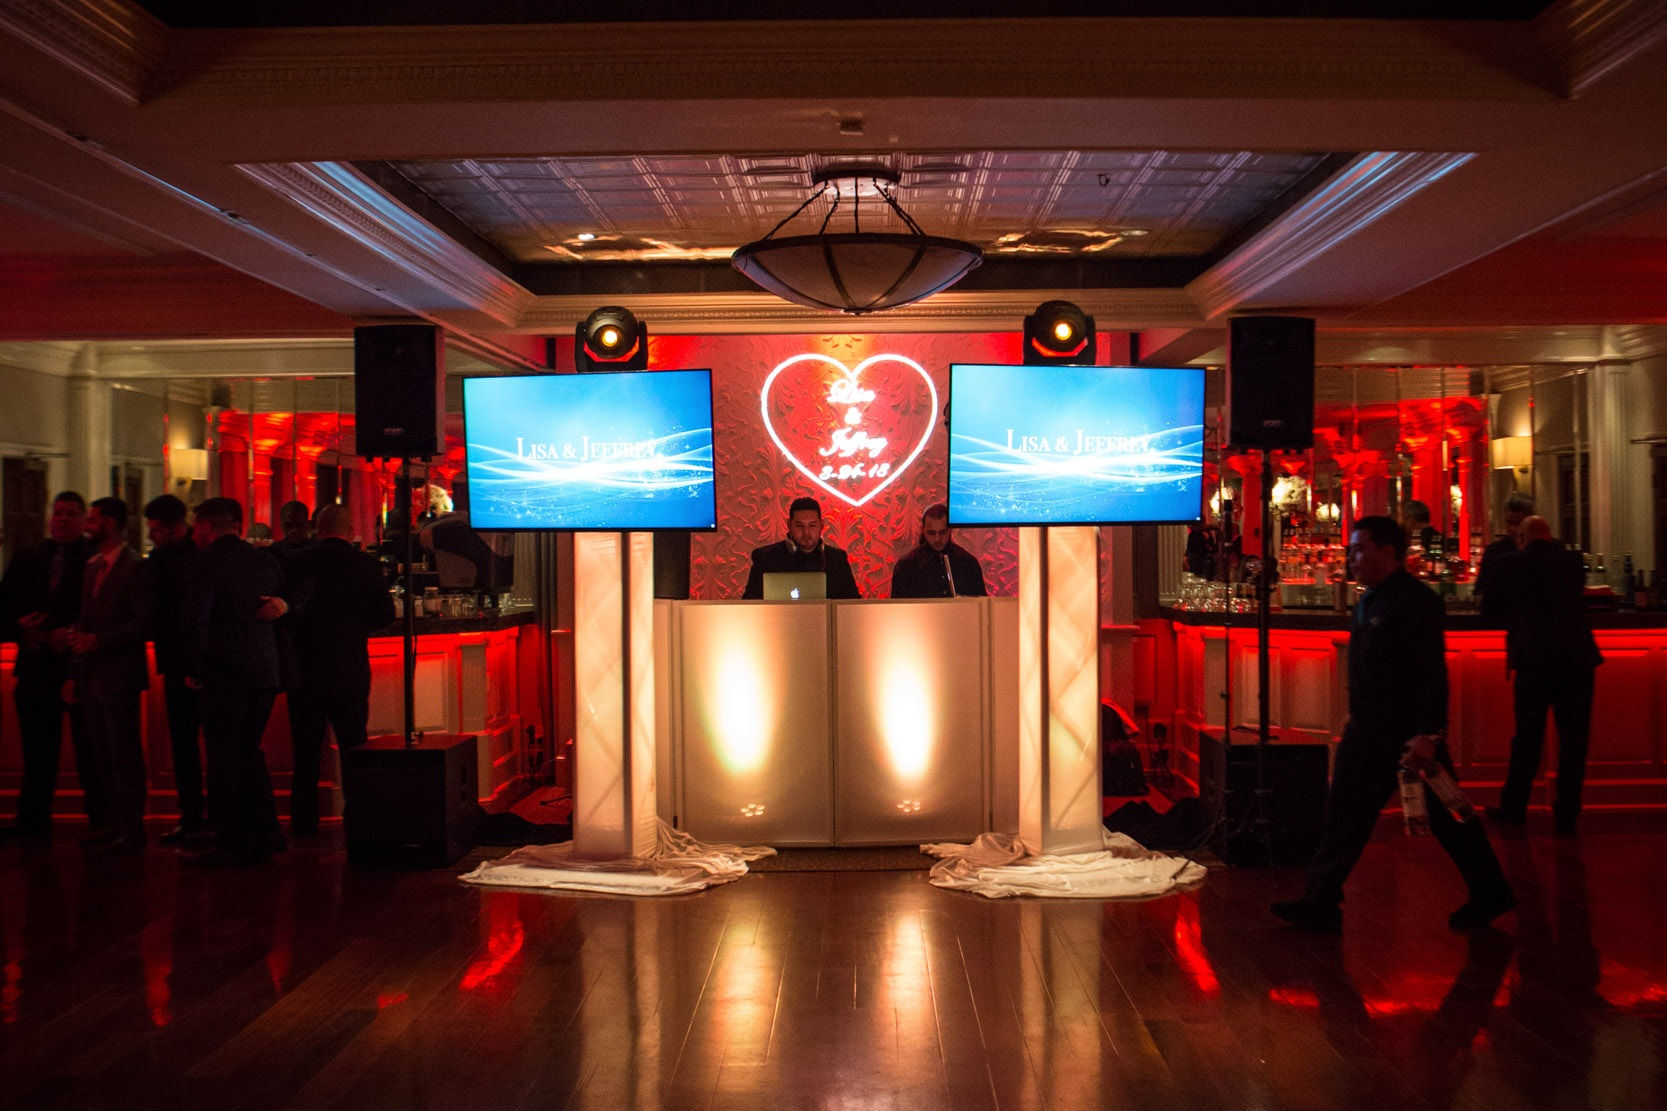 "SILVERFOX LIVE! AND MORE - Whether it's a percussionist, a sax player or jazz trio, Silverfox LIVE! can bring the best of live music to your event. Or, if you want to enhance things visually, LED uplighting, indoor sparklers, dancing ""on a cloud"" and many other visual enhancements are part of our arsenal."